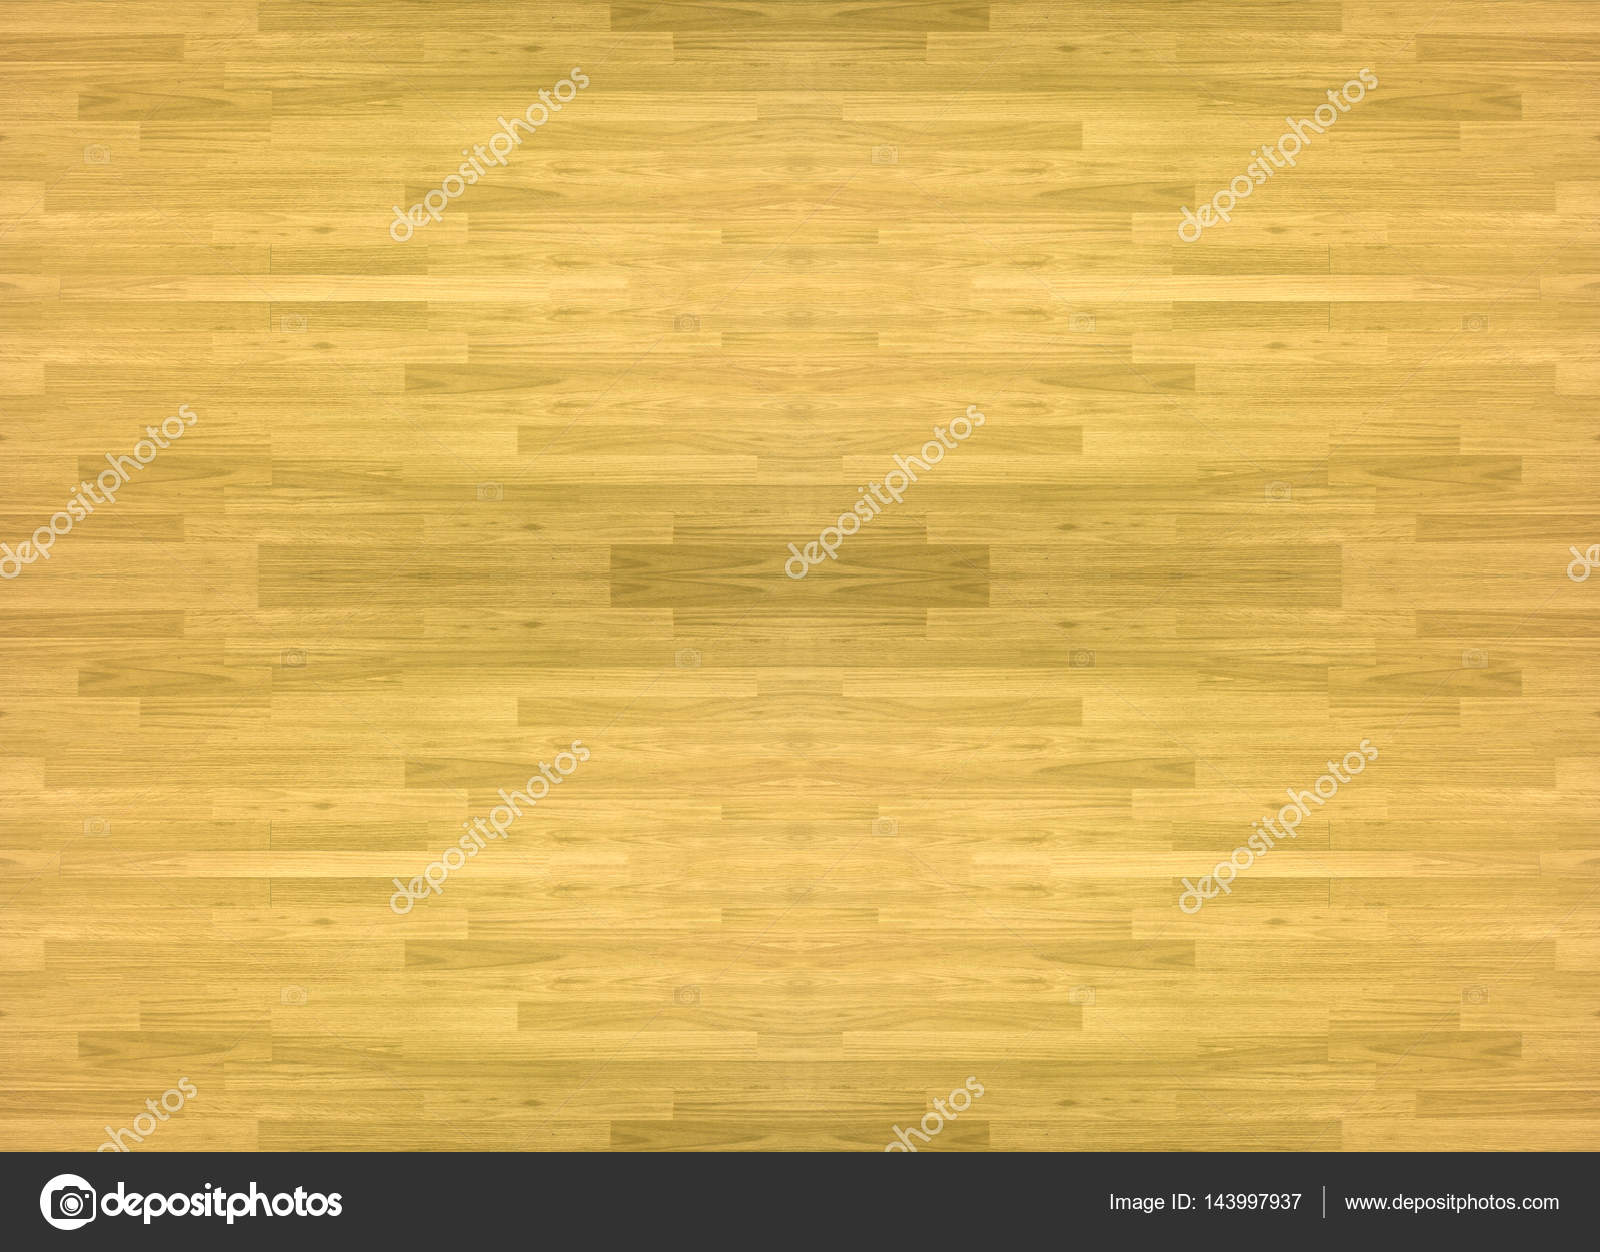 company basketball further choose of detail a below to picture pages customers so are floors floor portfolio gym and we see completed work link gymfloors woodfloors proud scott our